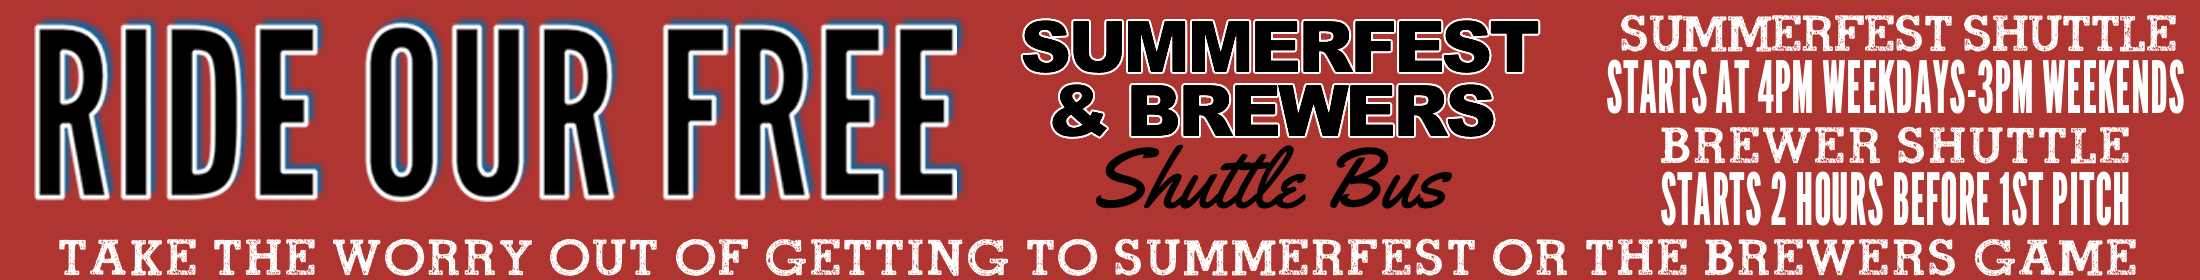 Free Downtown Shuttle to Summerfest, Milwaukee Brewers, and Packers